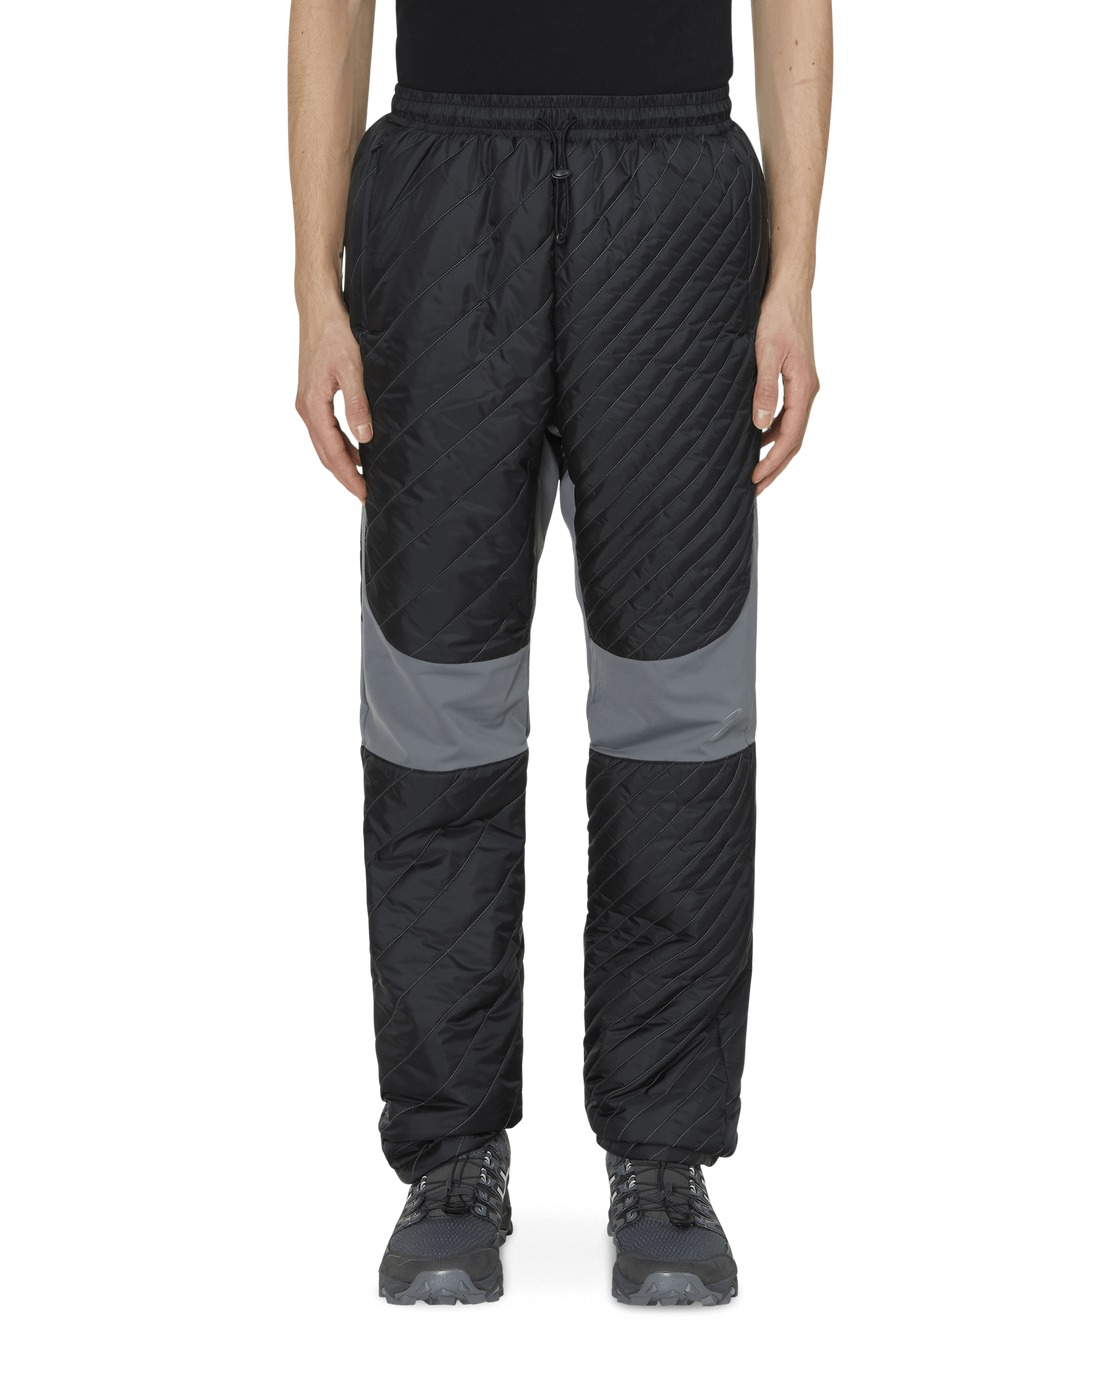 Asics Kiko Kostadinov Insulated Pant Chino Black/Carbon